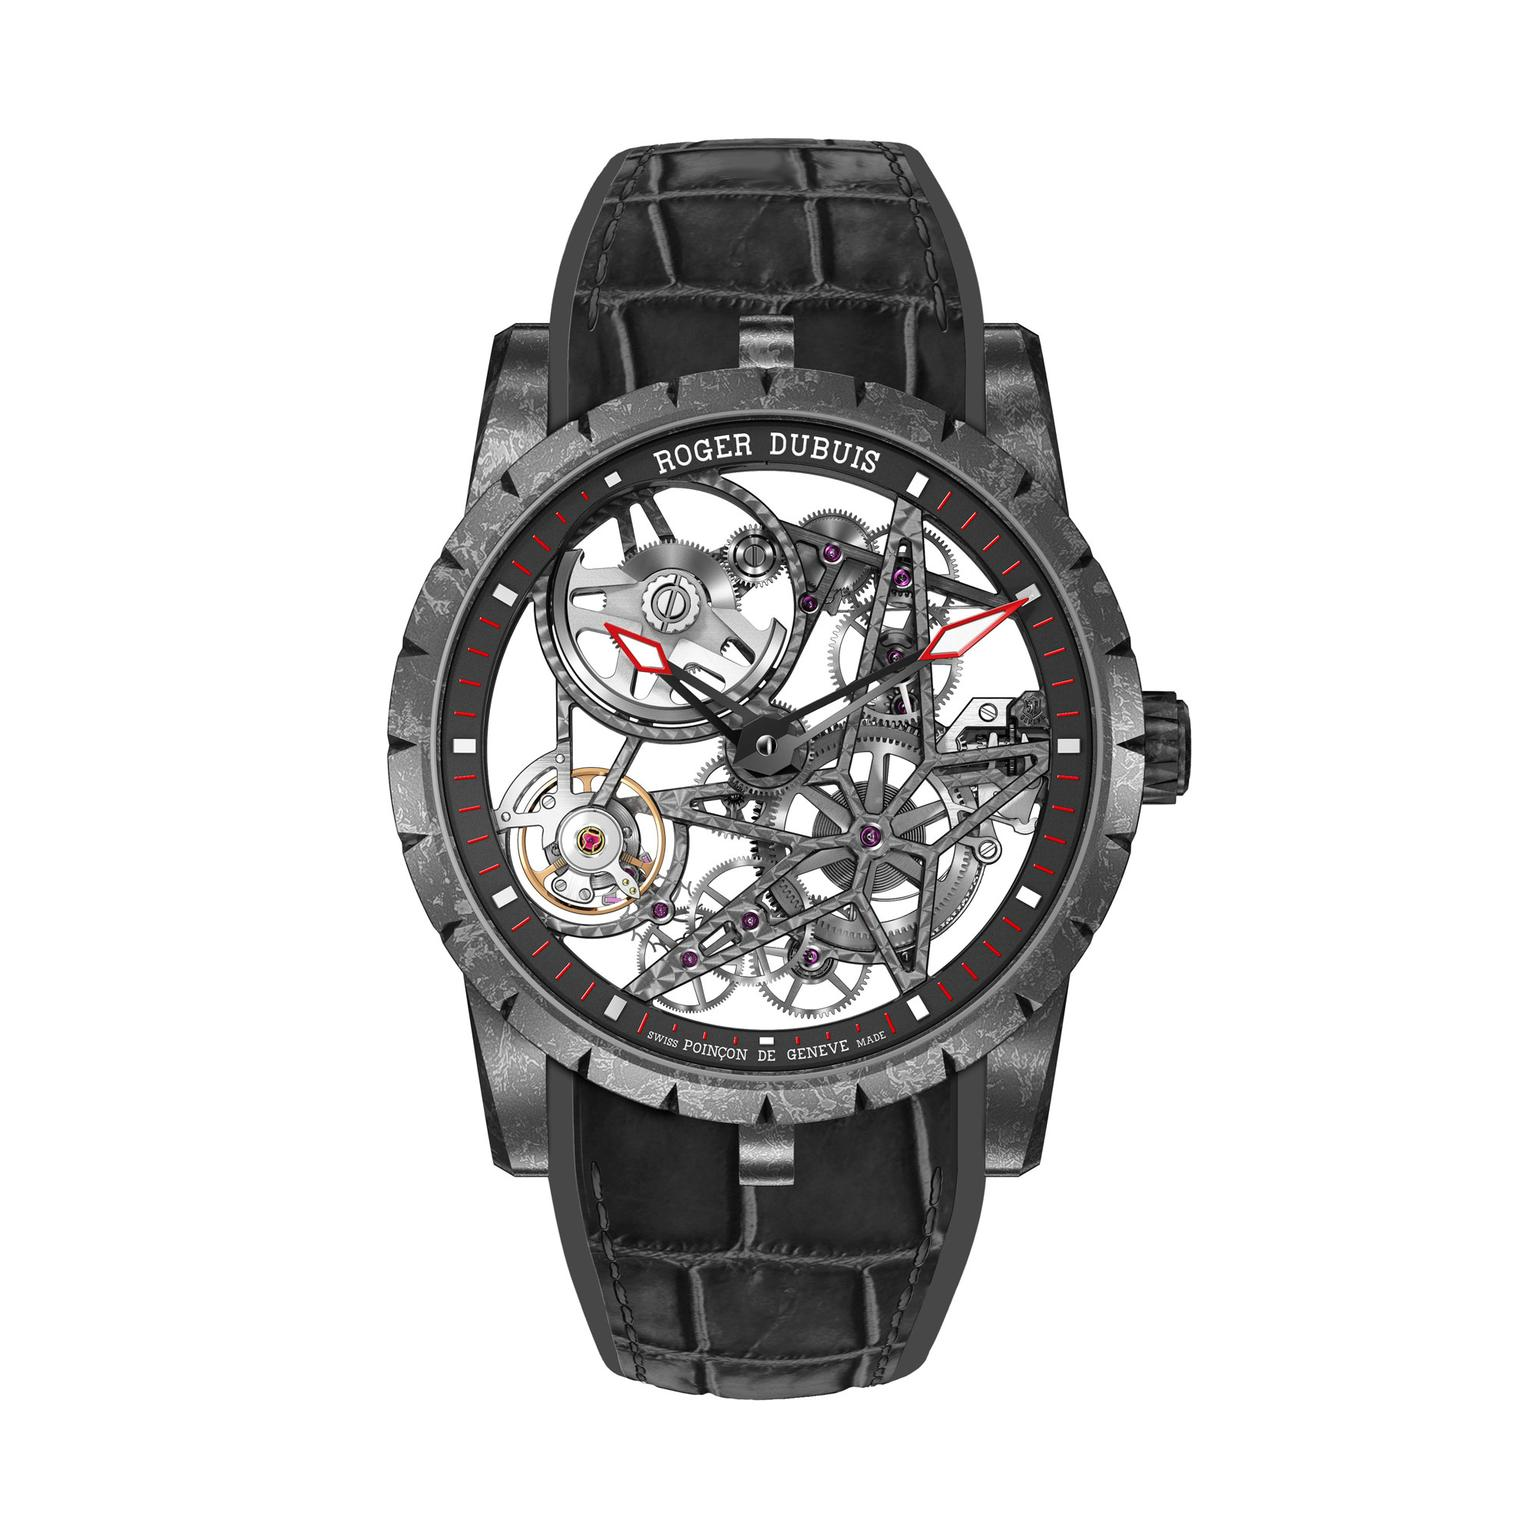 Roger Dubuis Excalibur Skeleton watch